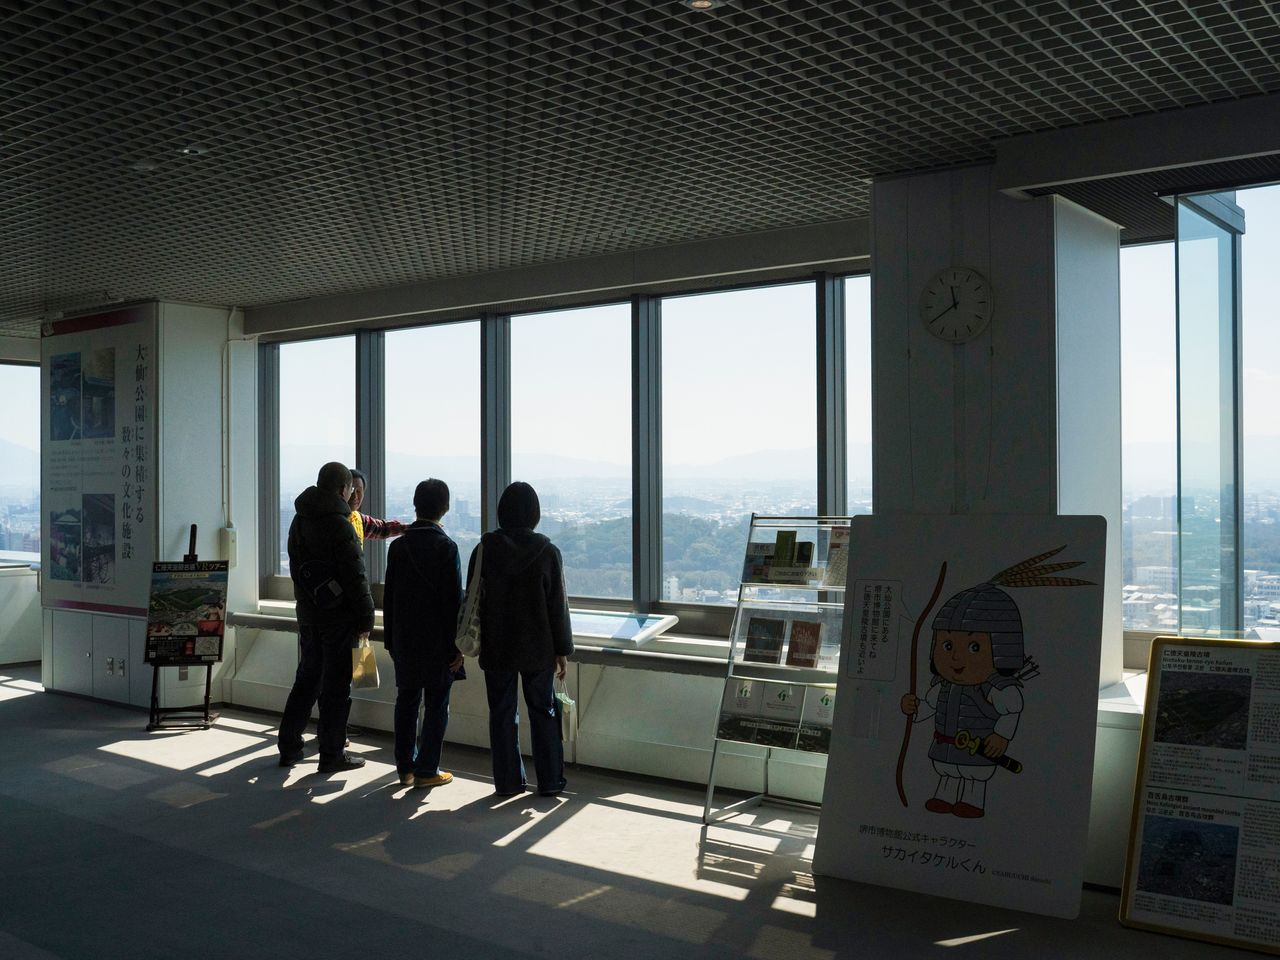 Display panels and descriptions given by tour guides make for an enjoyable visit to the Sakai City Hall observation deck. Admission is free.